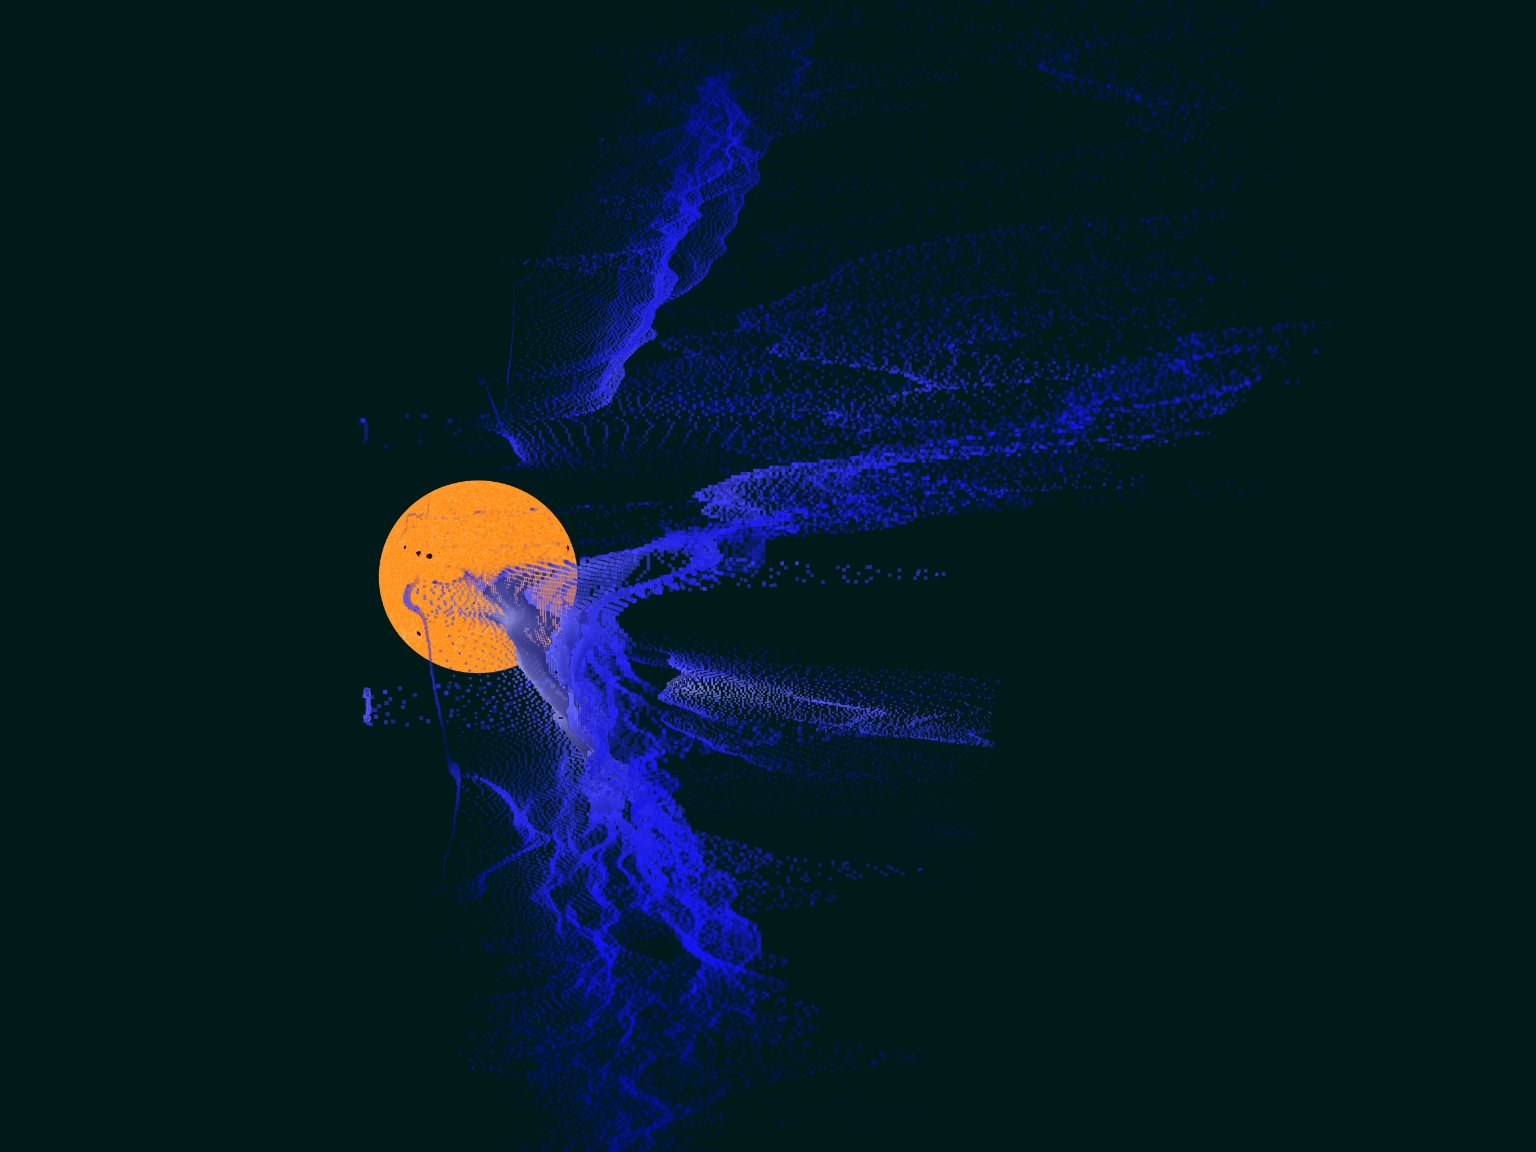 Building a 3-D Coronal Mass Ejection from 2-D Data